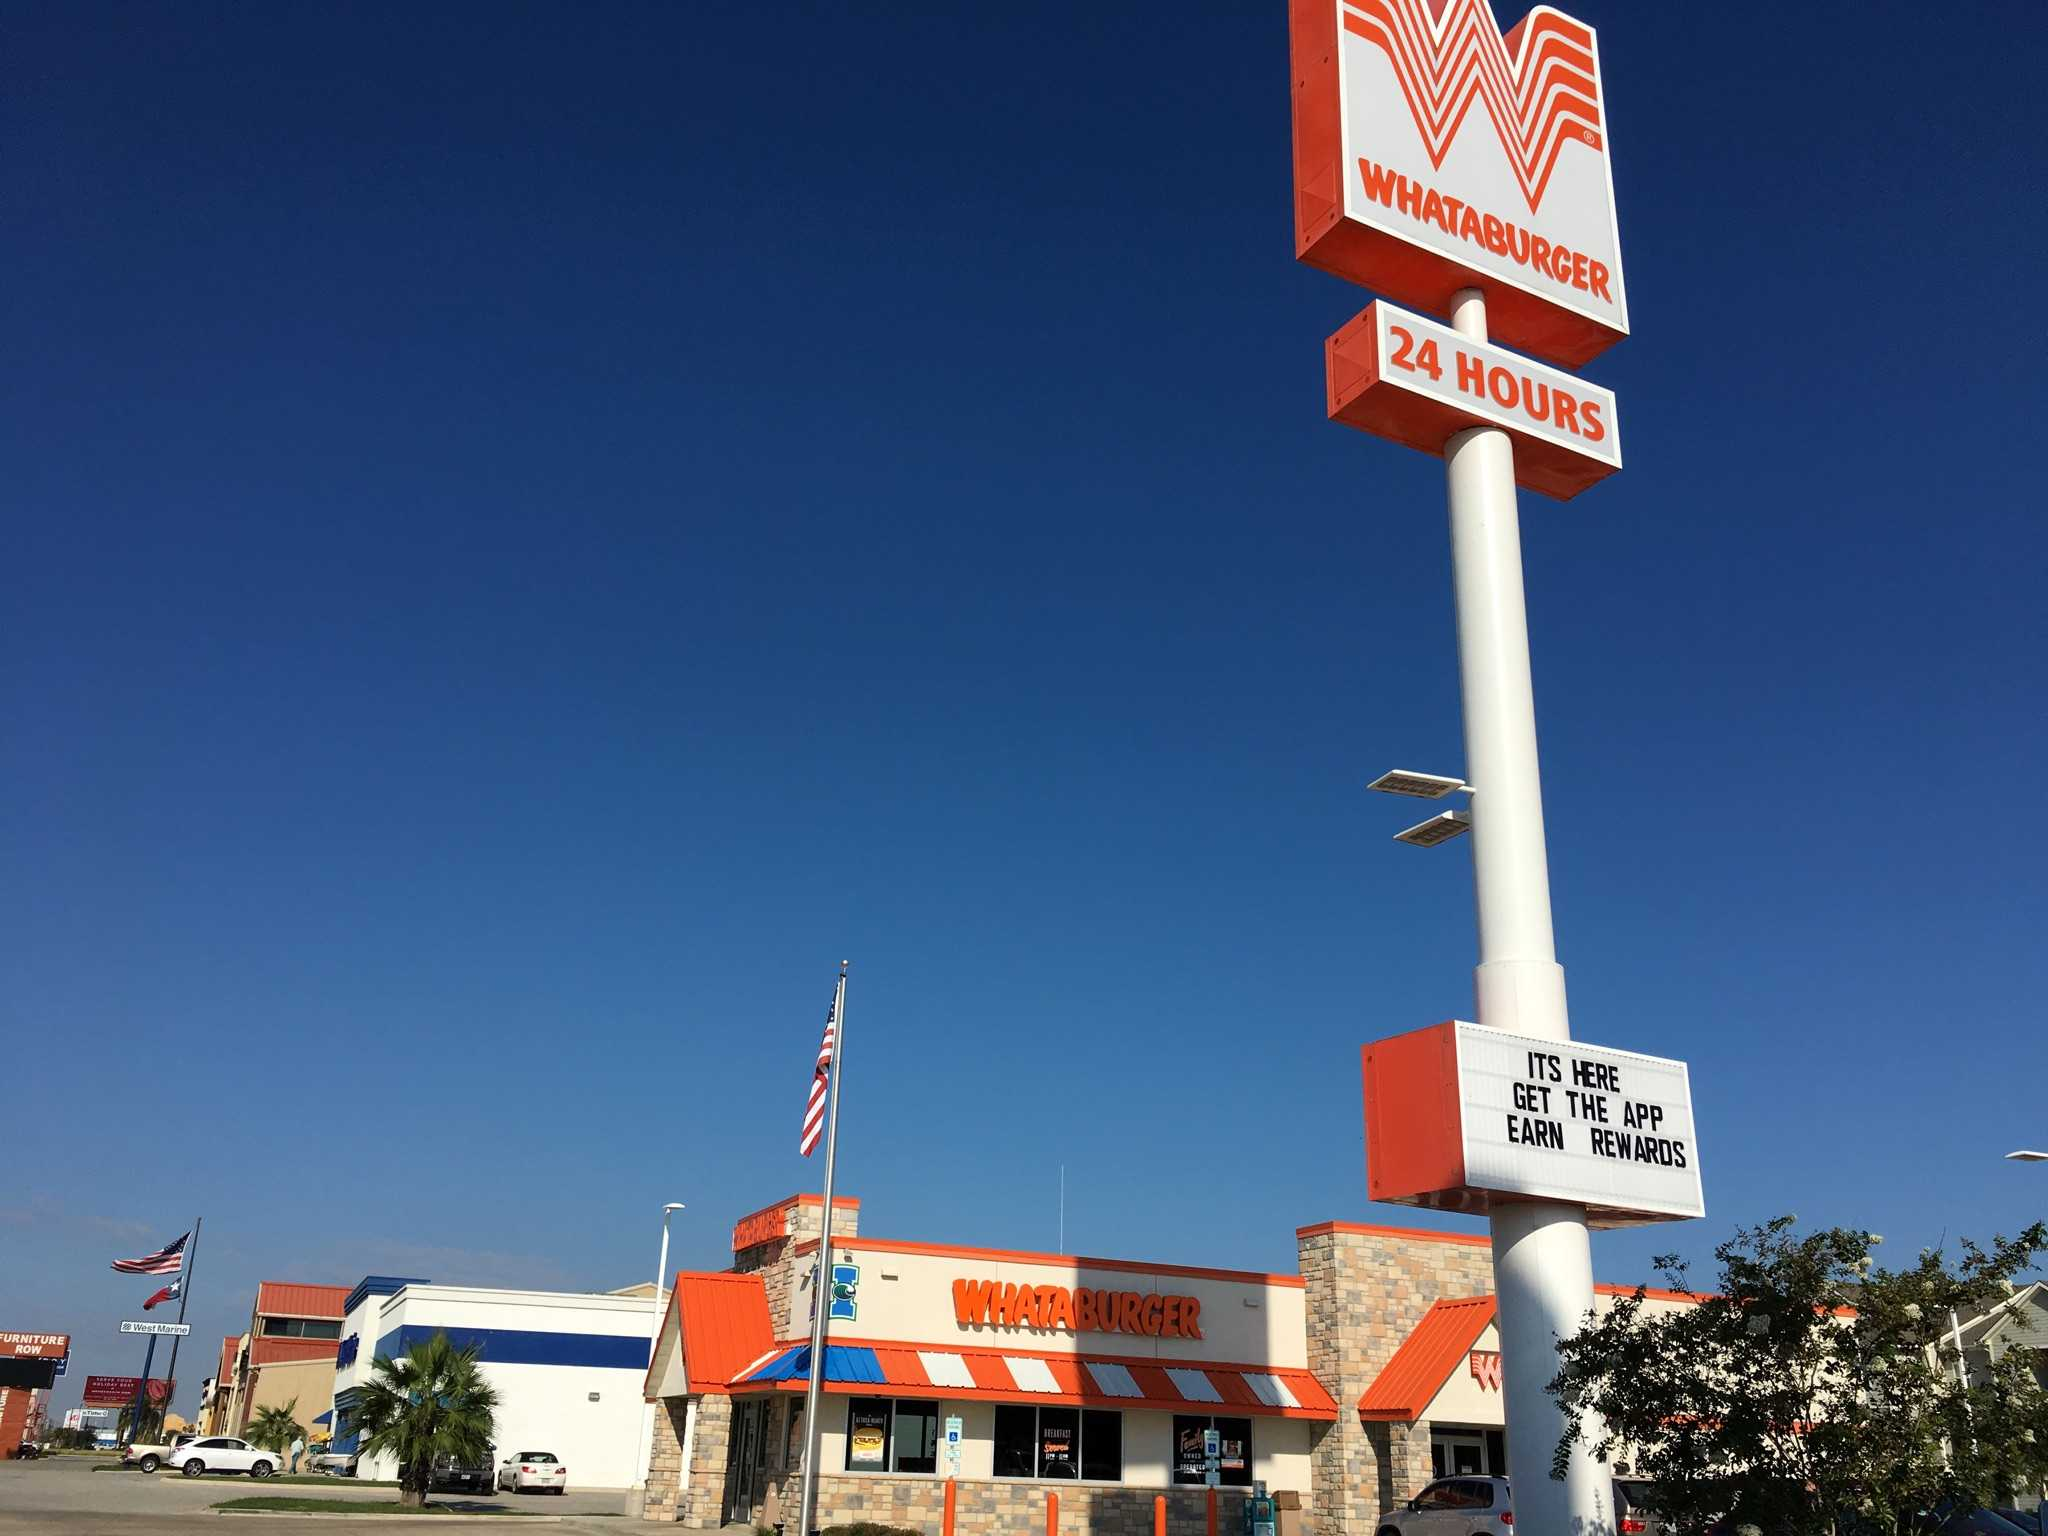 Whataburger rewards with mobile app